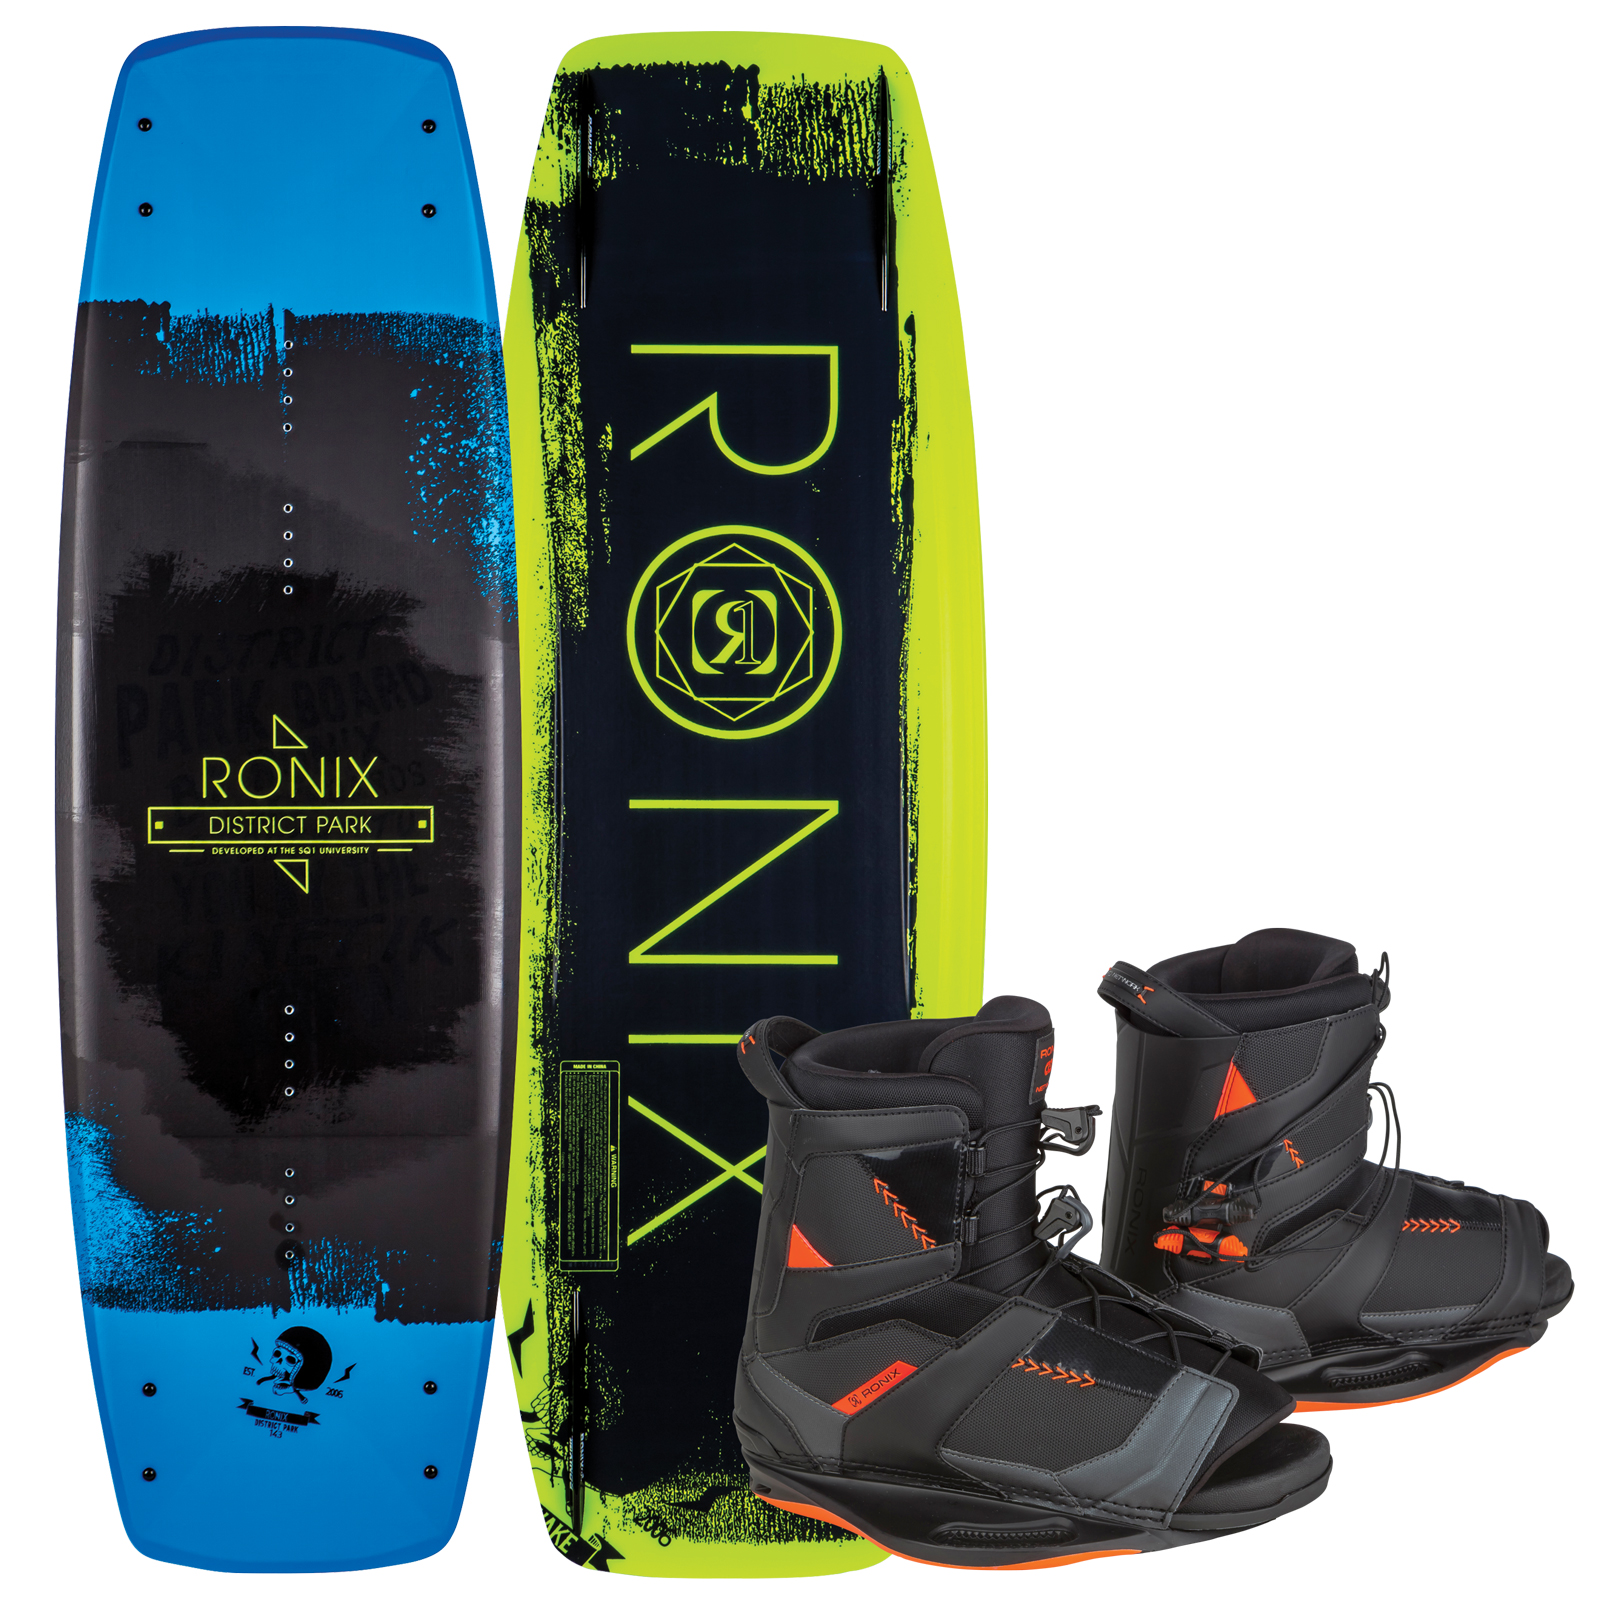 DISTRICT PARK 129 W/ NETWORK PACKAGE RONIX 2017